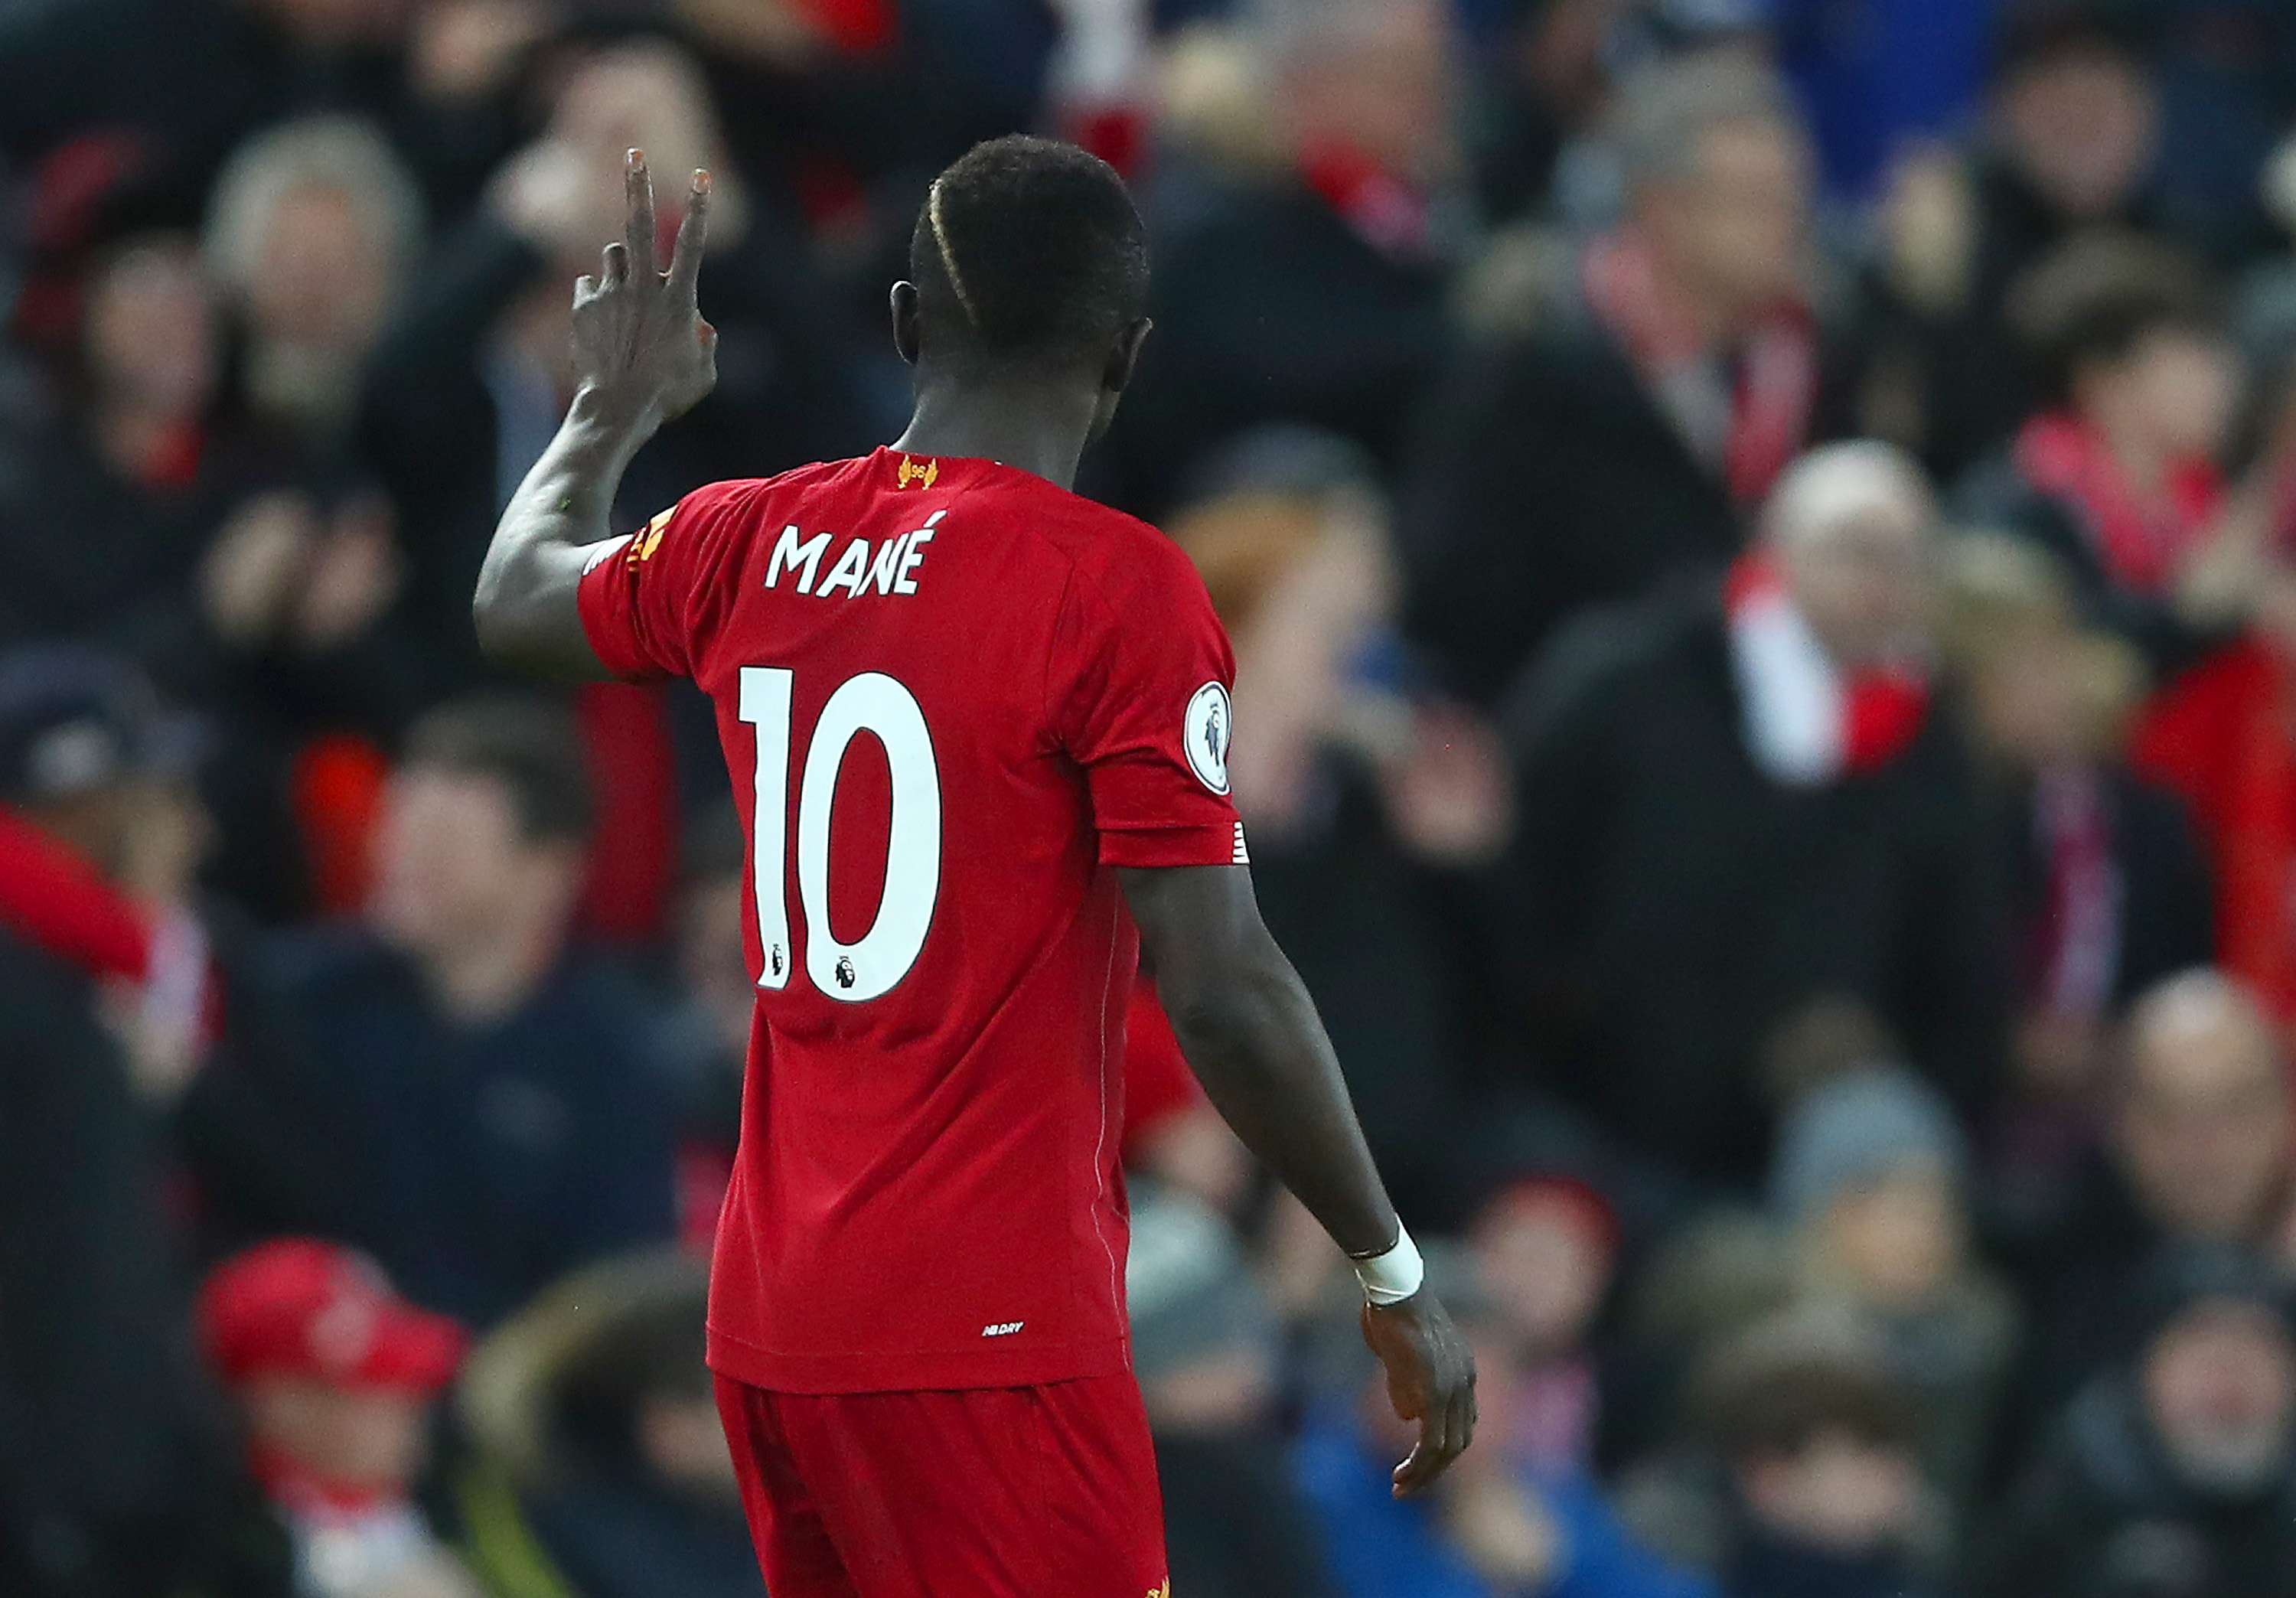 Sadio Mane has tested positive for coronavirus (Photo by Clive Brunskill/Getty Images)